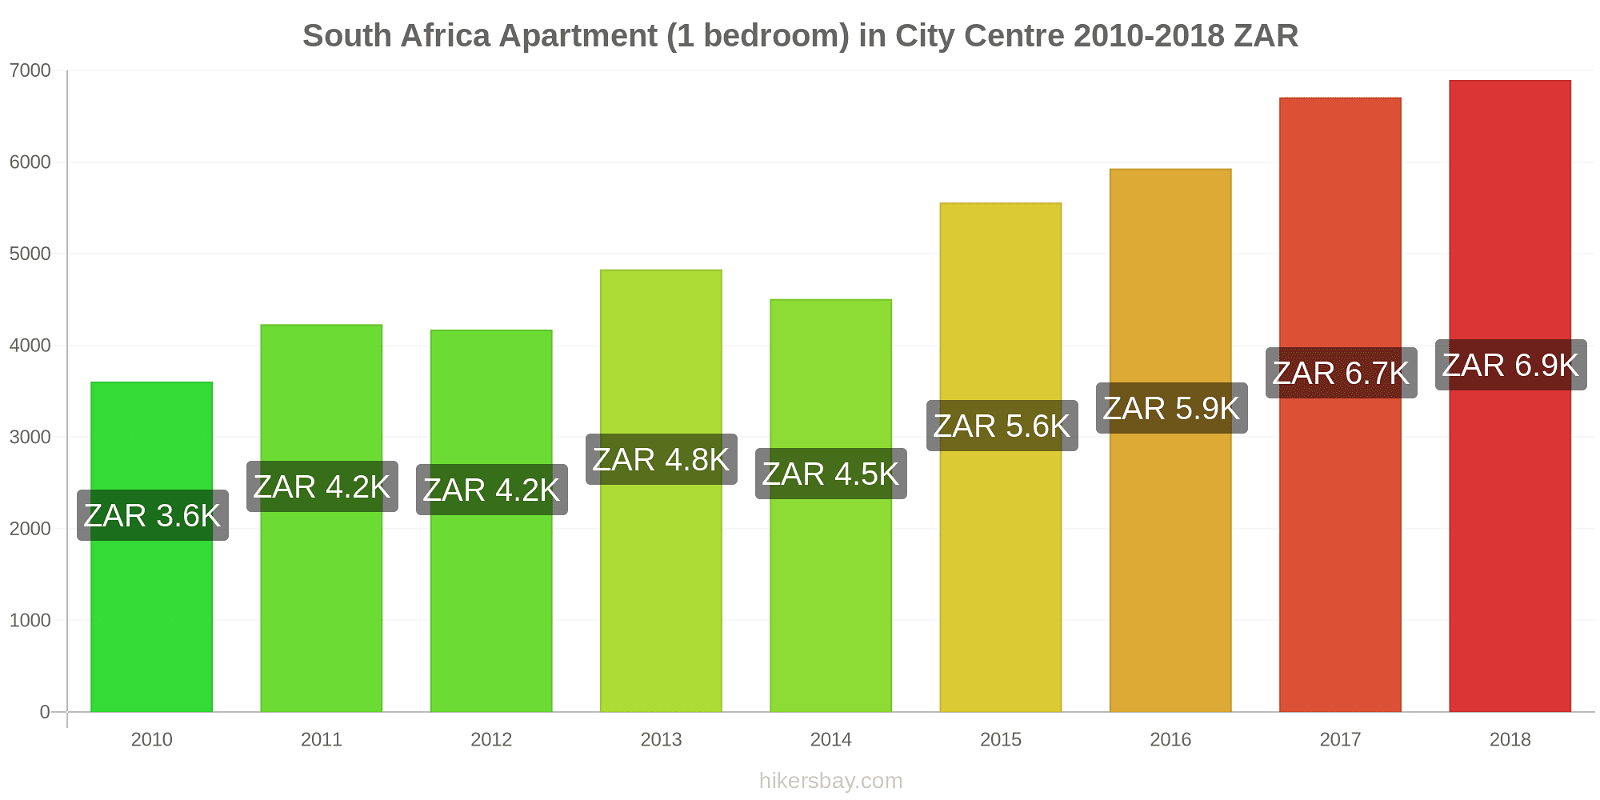 South Africa price changes Apartment (1 bedroom) in City Centre hikersbay.com